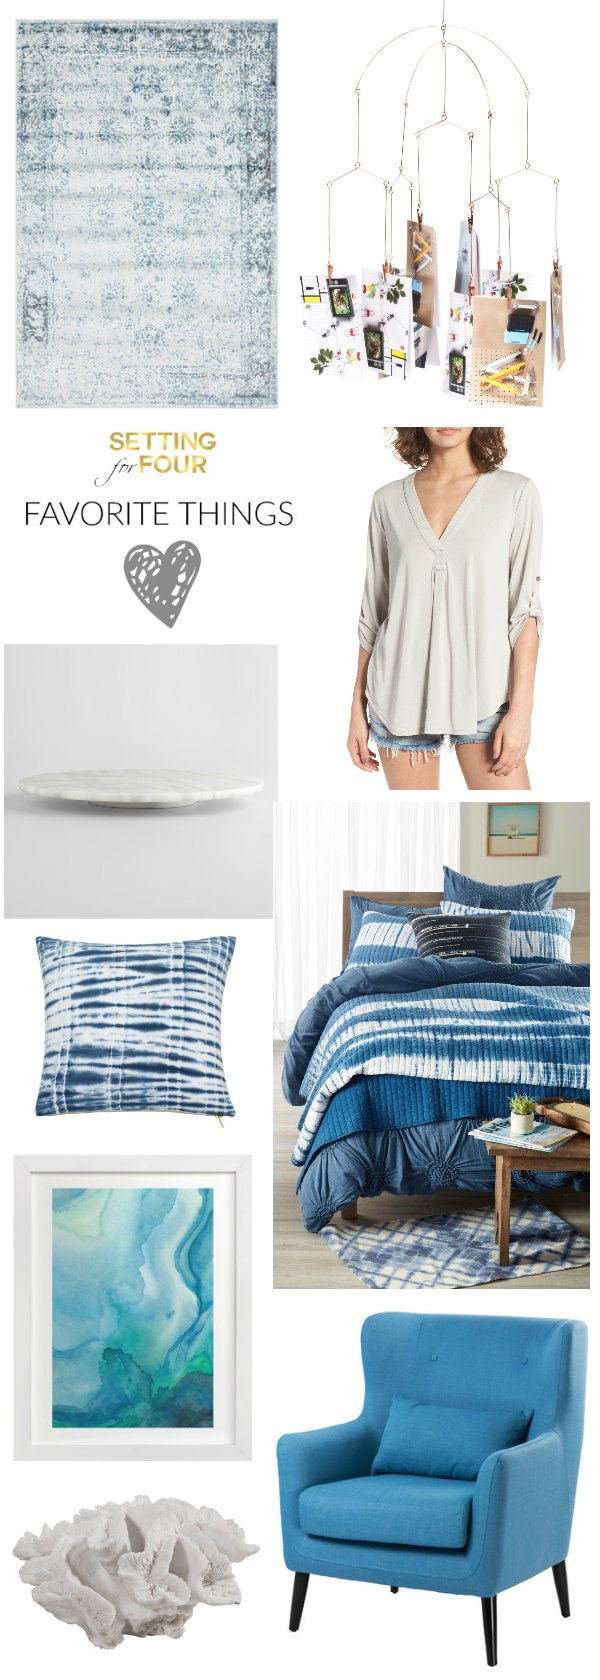 See my latest favorite things and style ideas to freshen up your home decor and closet with the color blue, coastal looks, marble, abstract art, coral objects, flowy tops, photo mobile and shibori prints!